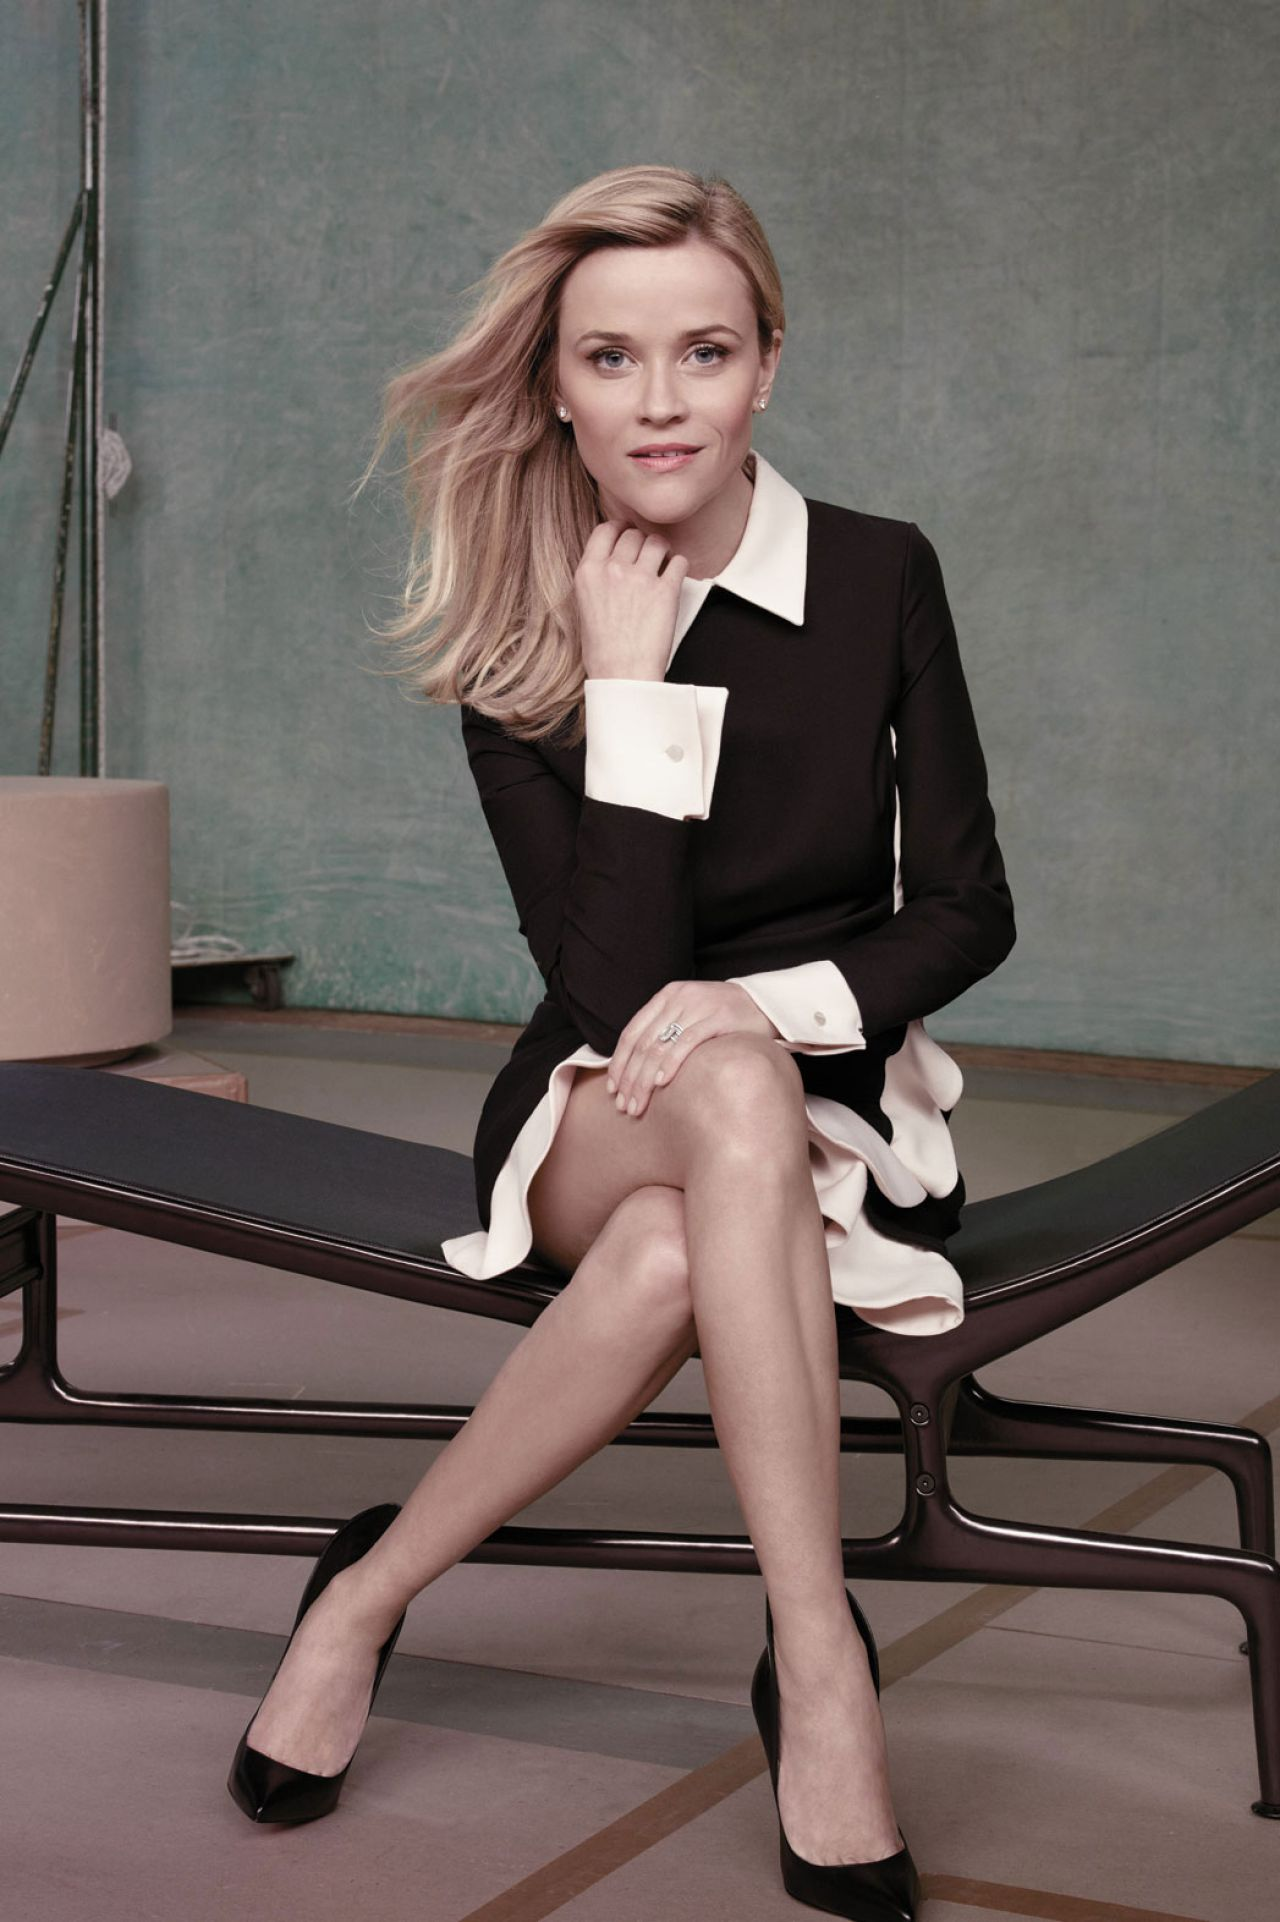 Reese Witherspoon – The Hollywood Reporter Magazine, November 2014